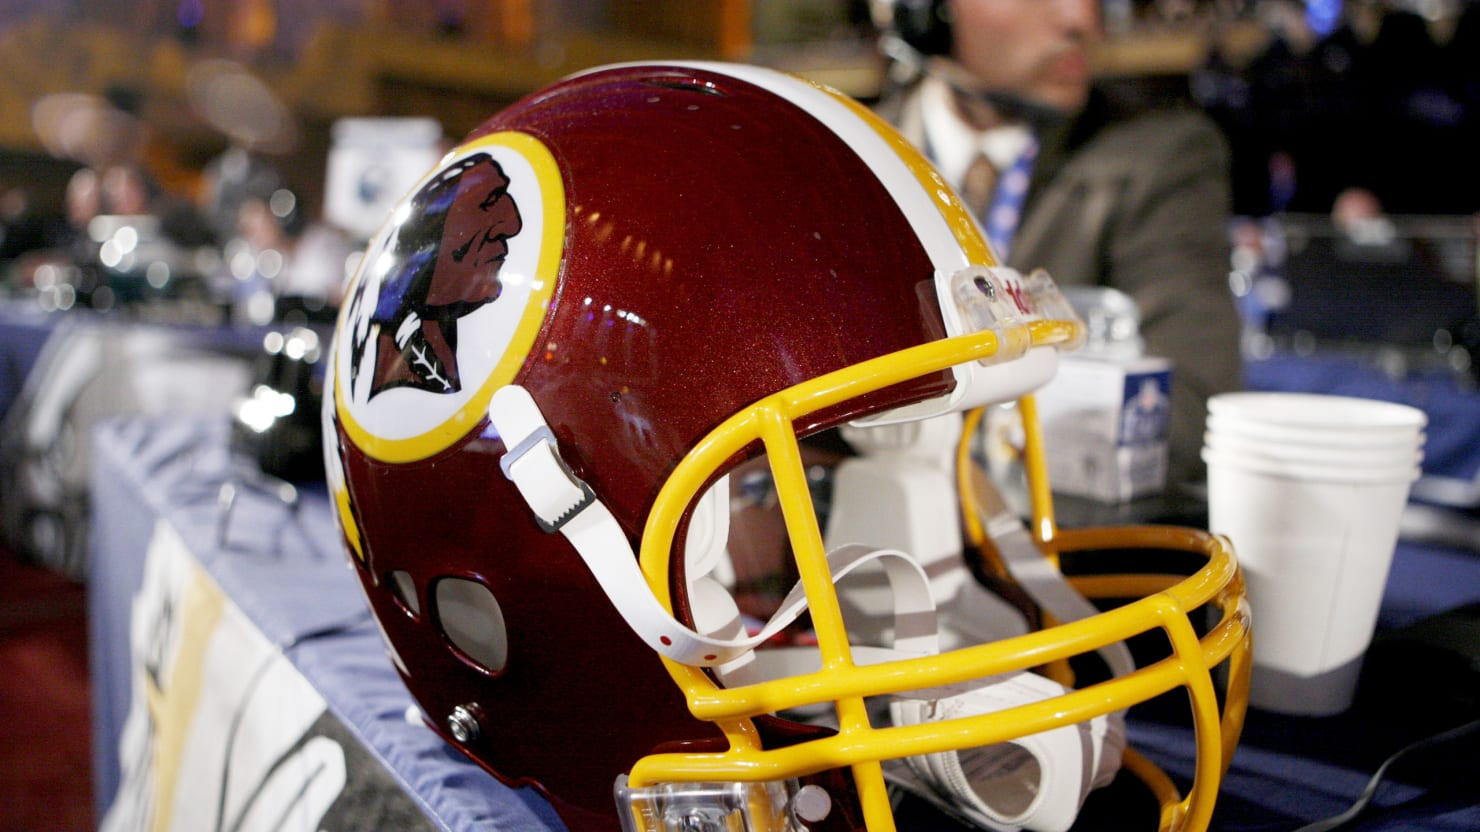 The Racist Redskins